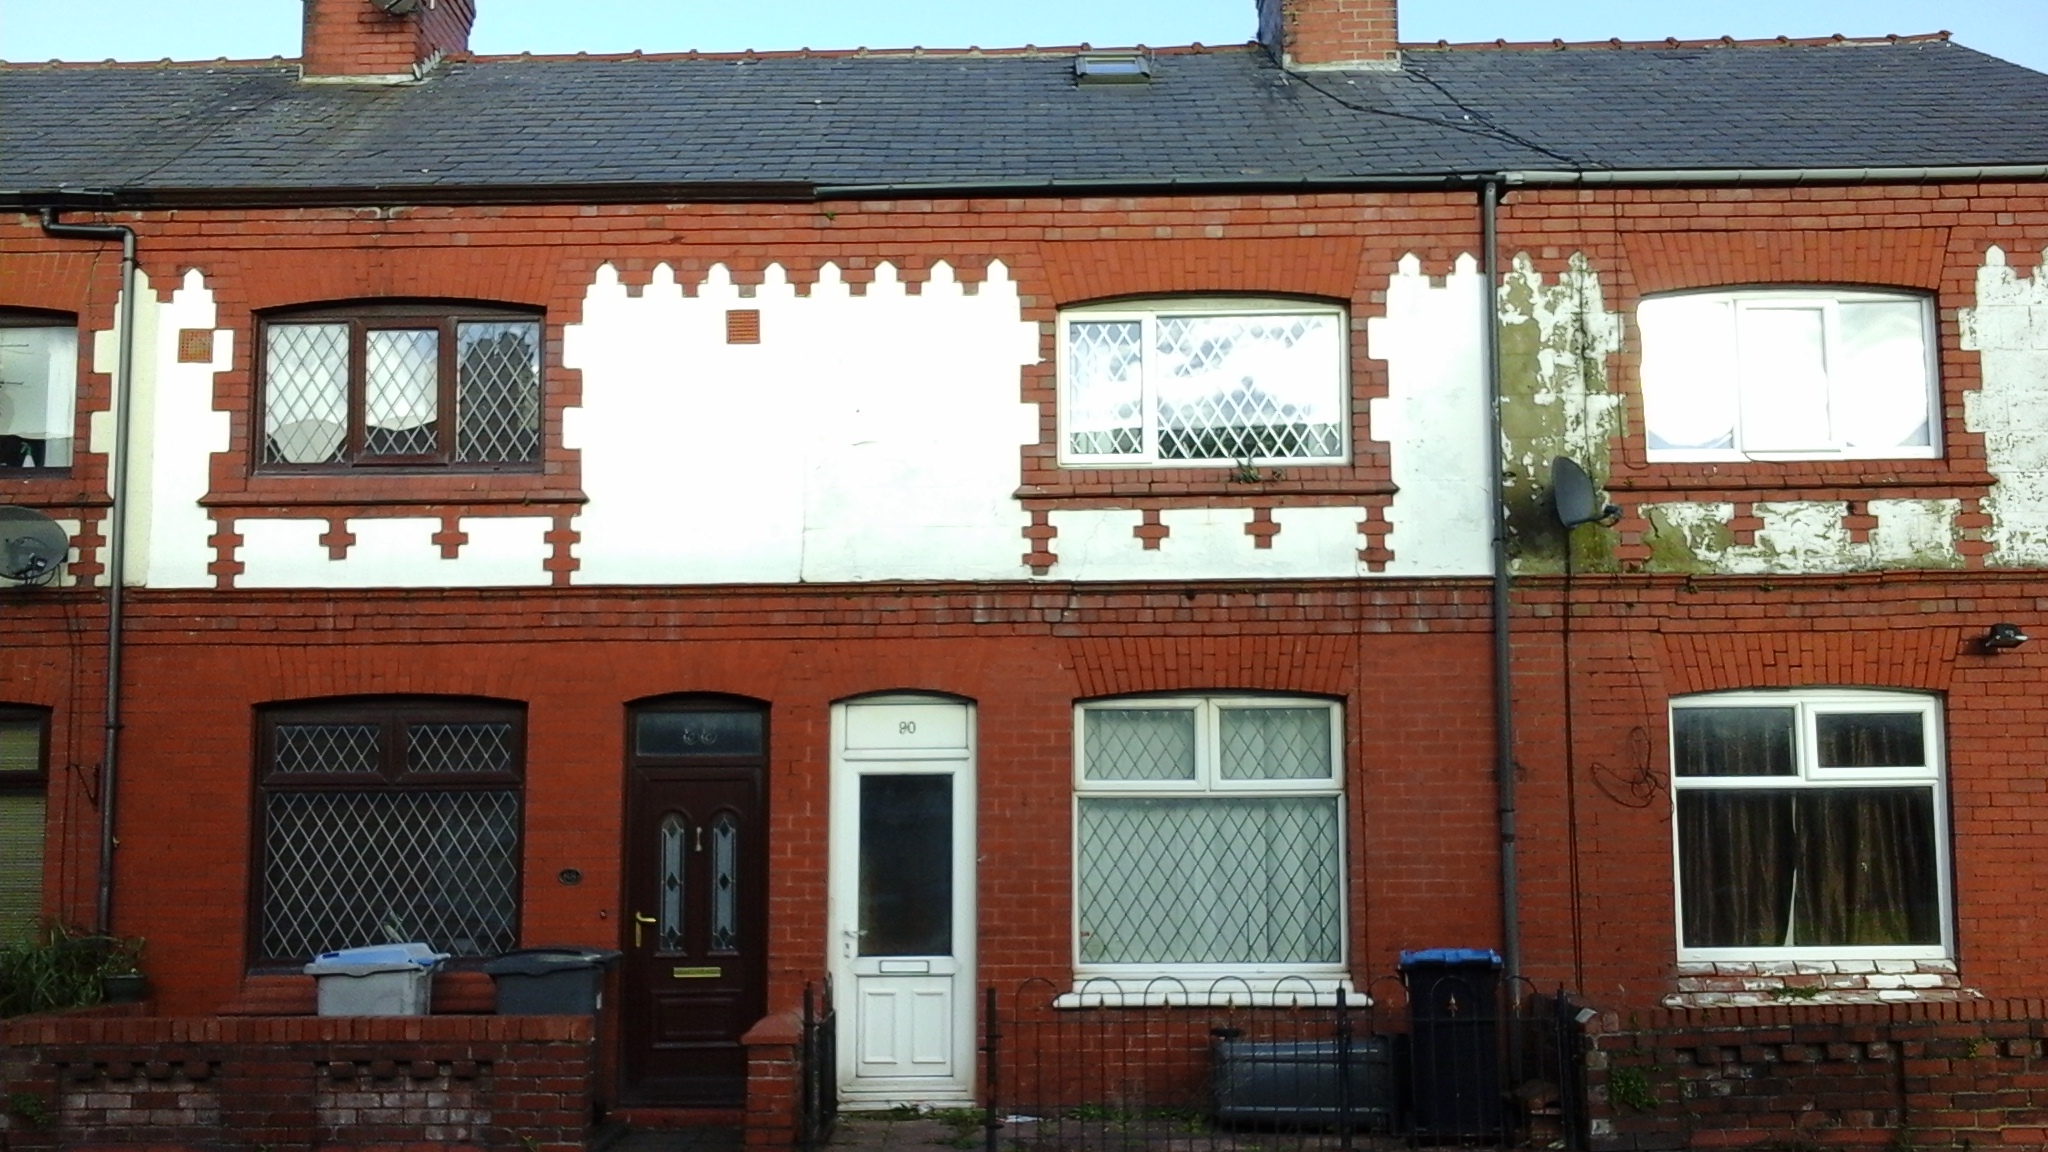 House Property Sales In Blackpool